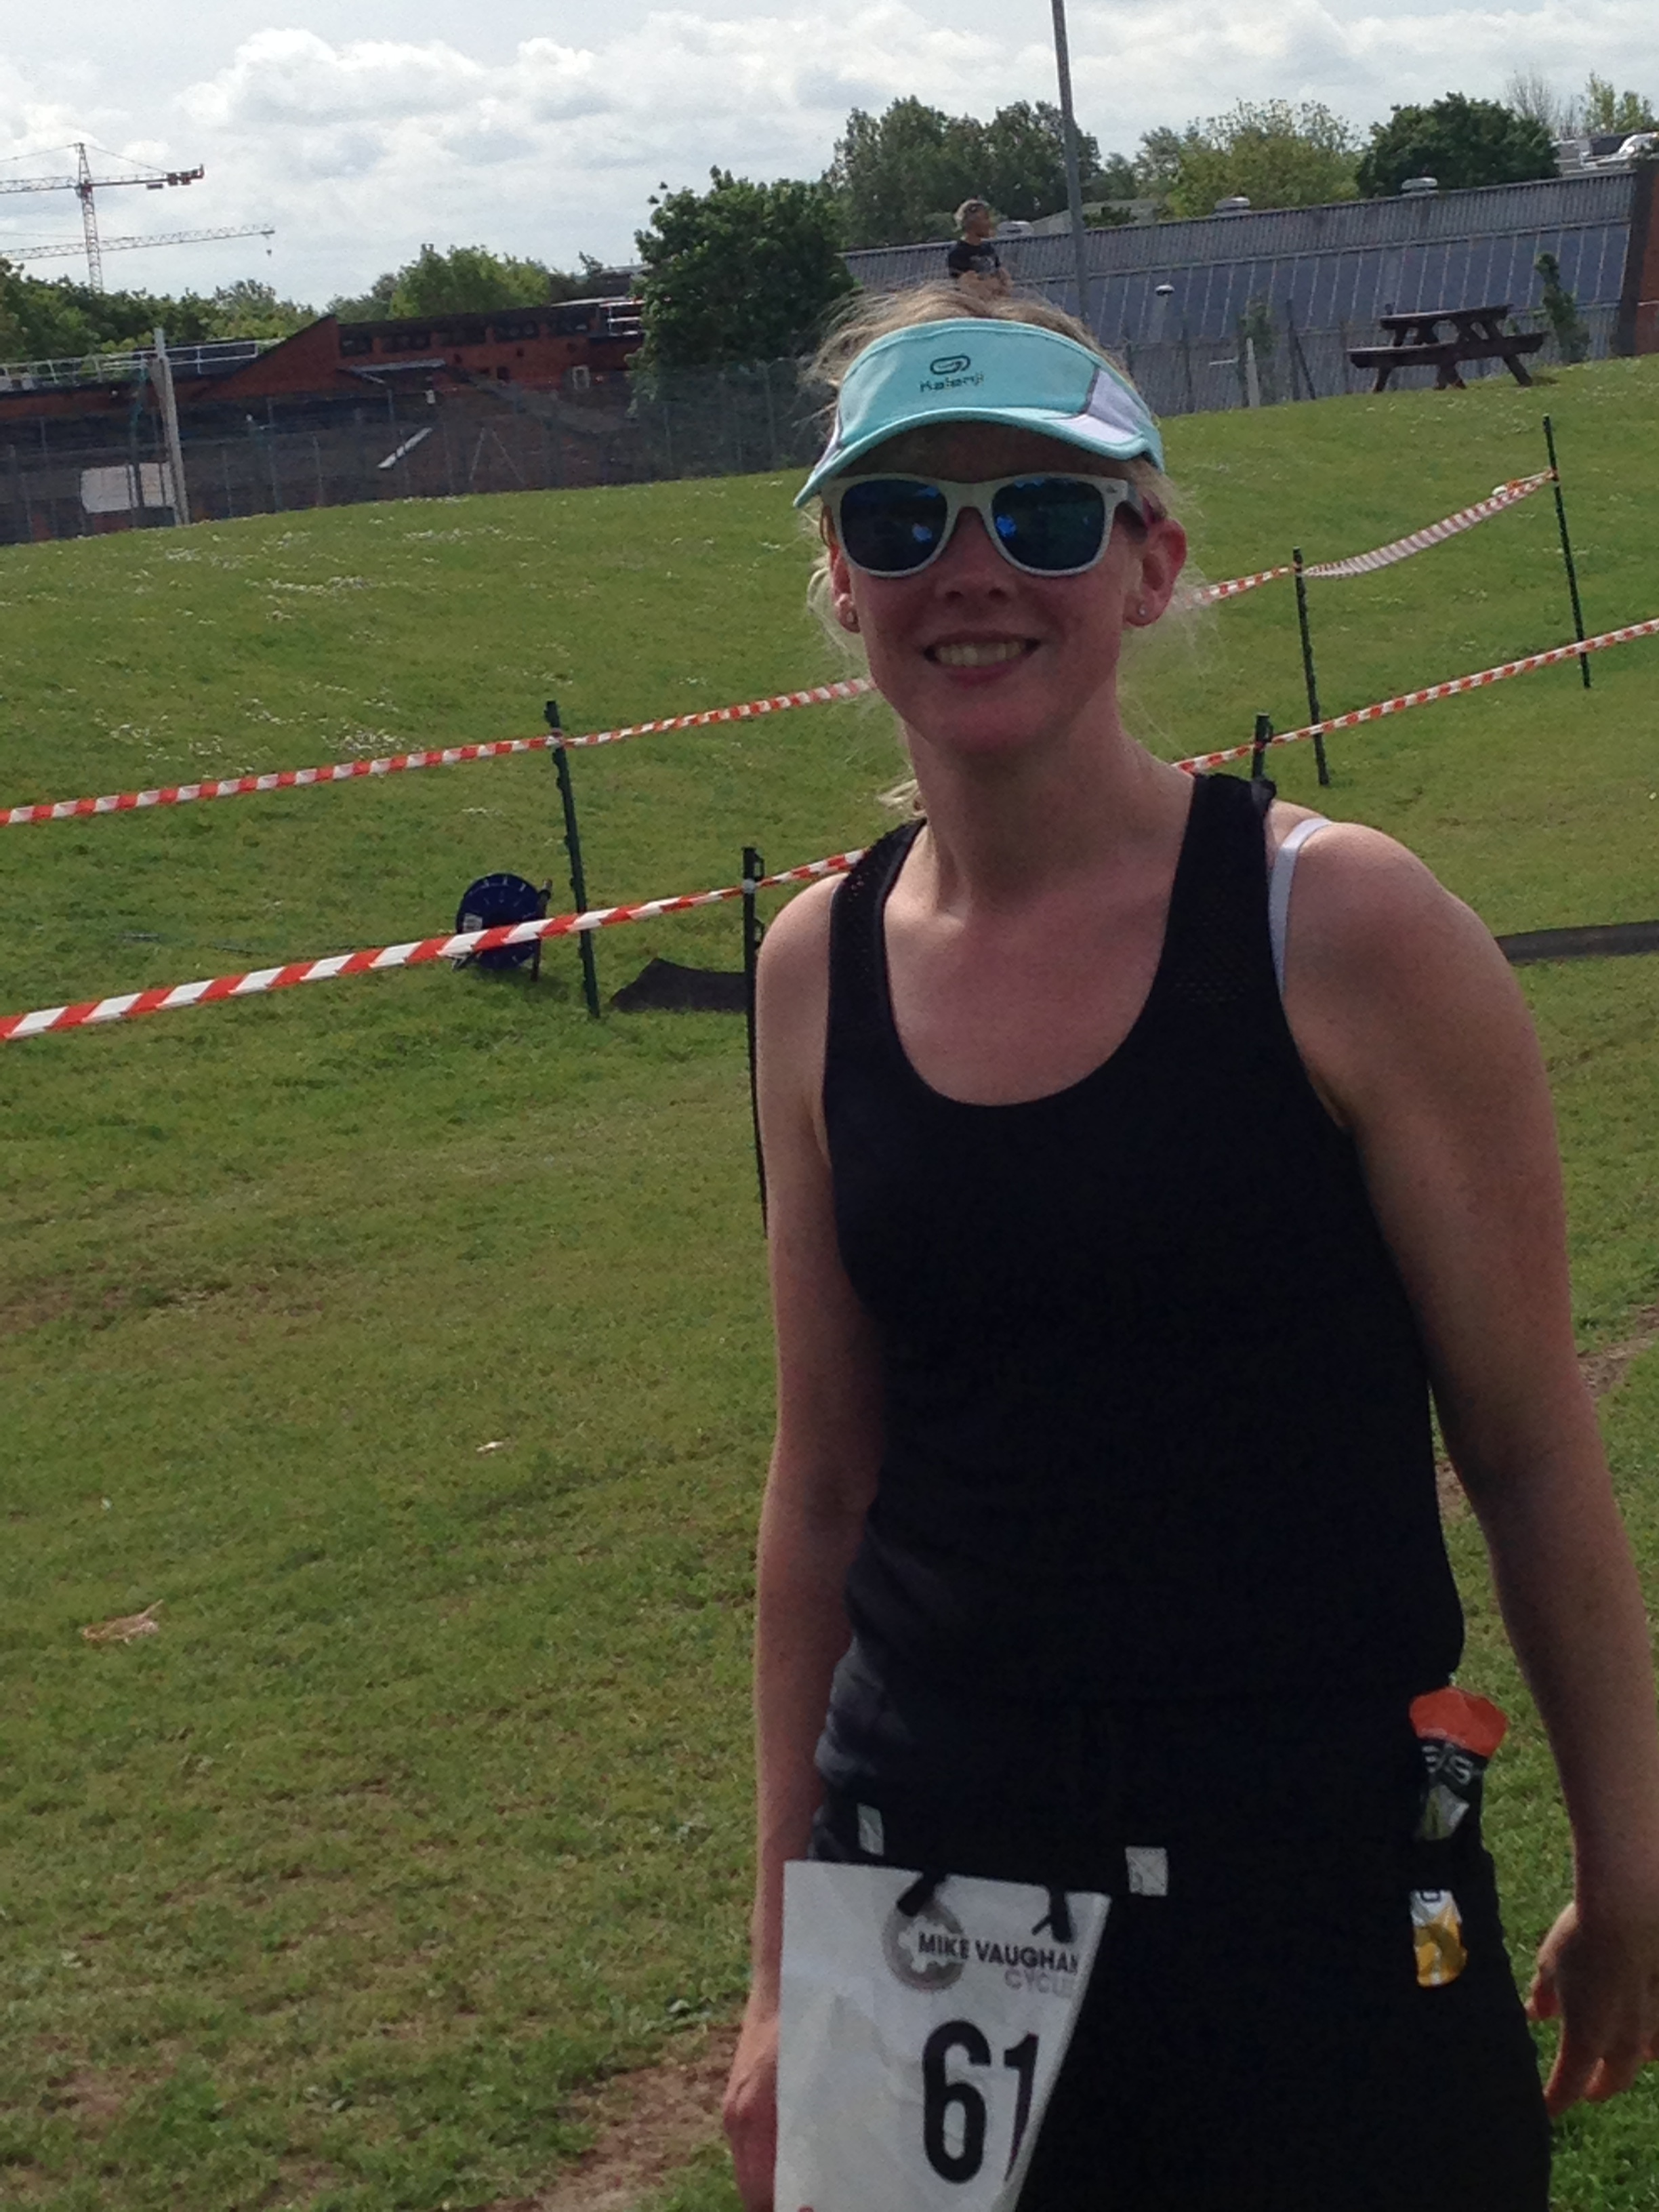 Nicki (Coventry) - Completing the Coventry triathlon in aid of BAD-UK.